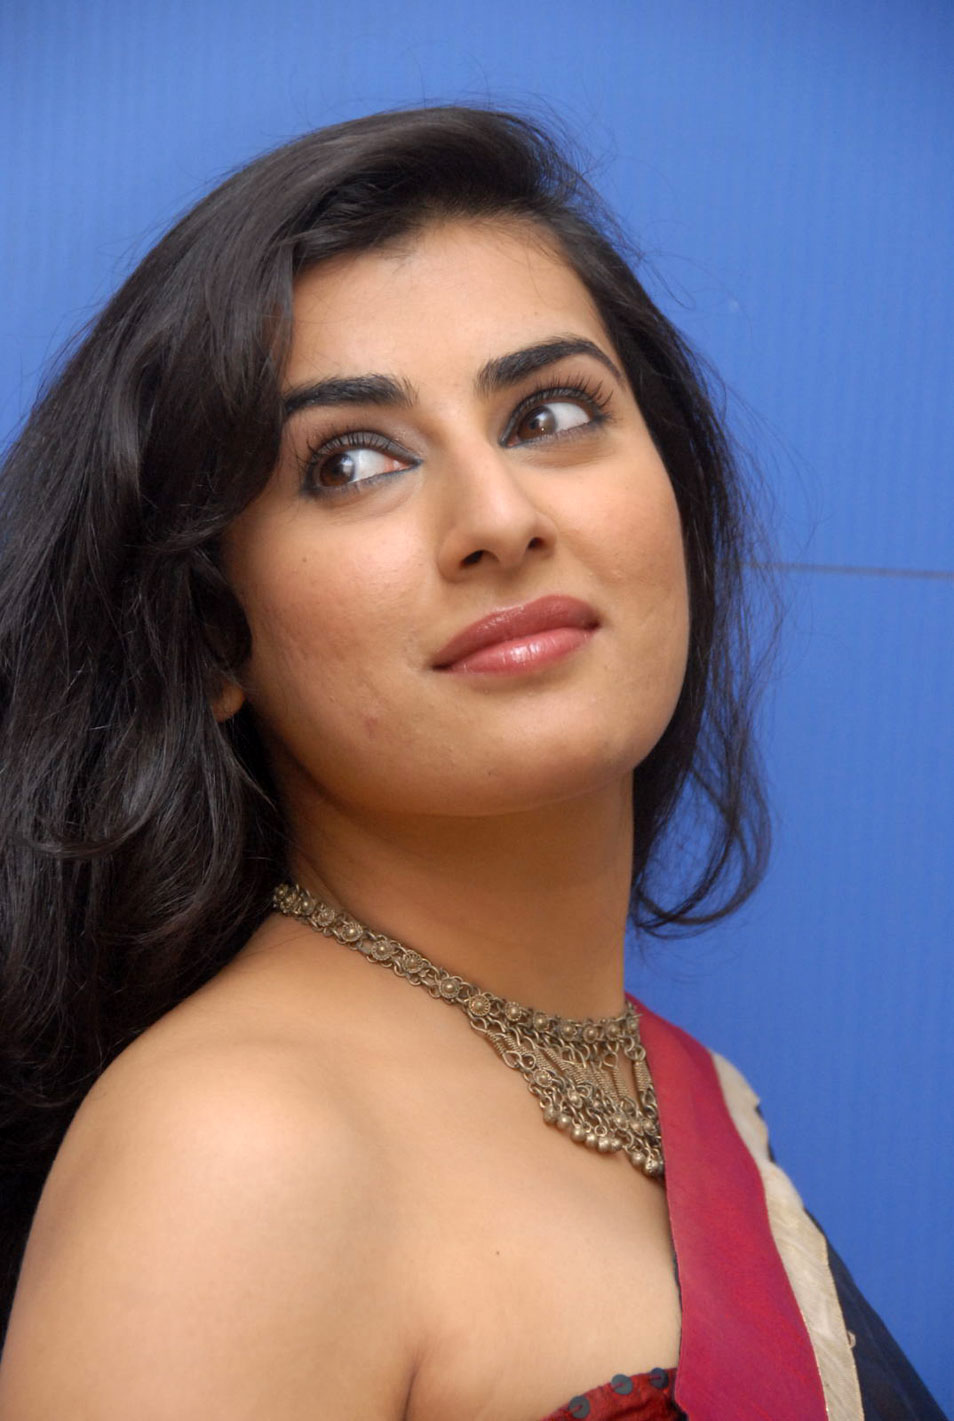 Tollywood Actress Archana Veda Hot Mass Face Closeup Smiling Stills